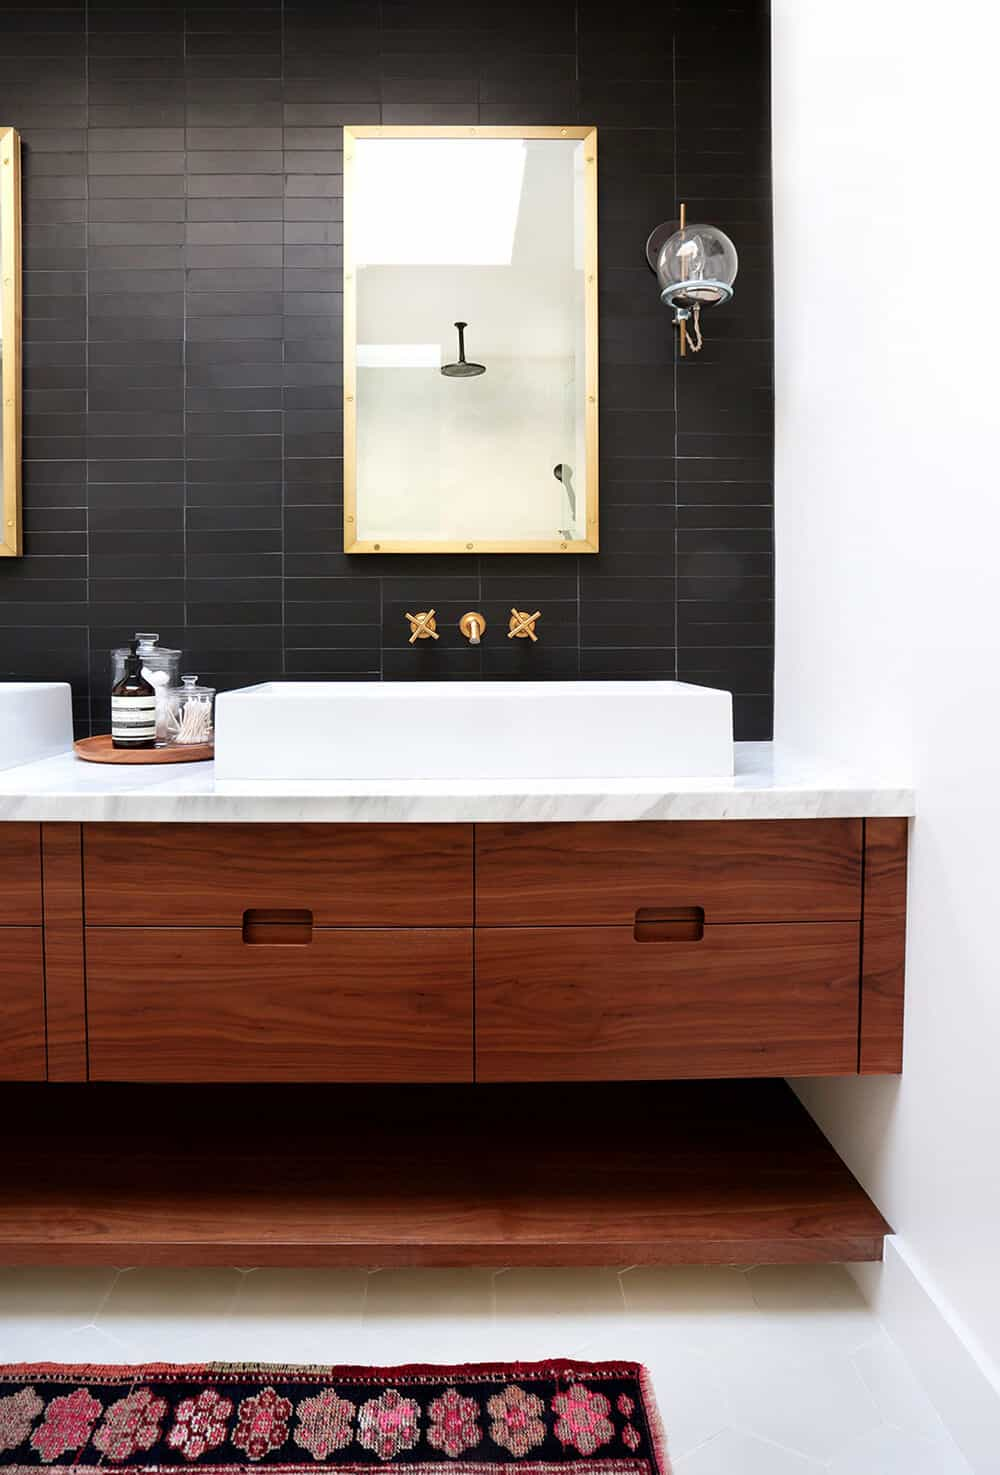 black-tile-bathroom-grout-color-and-penny-tiles-and-subway-tiles-emily-henderson-design